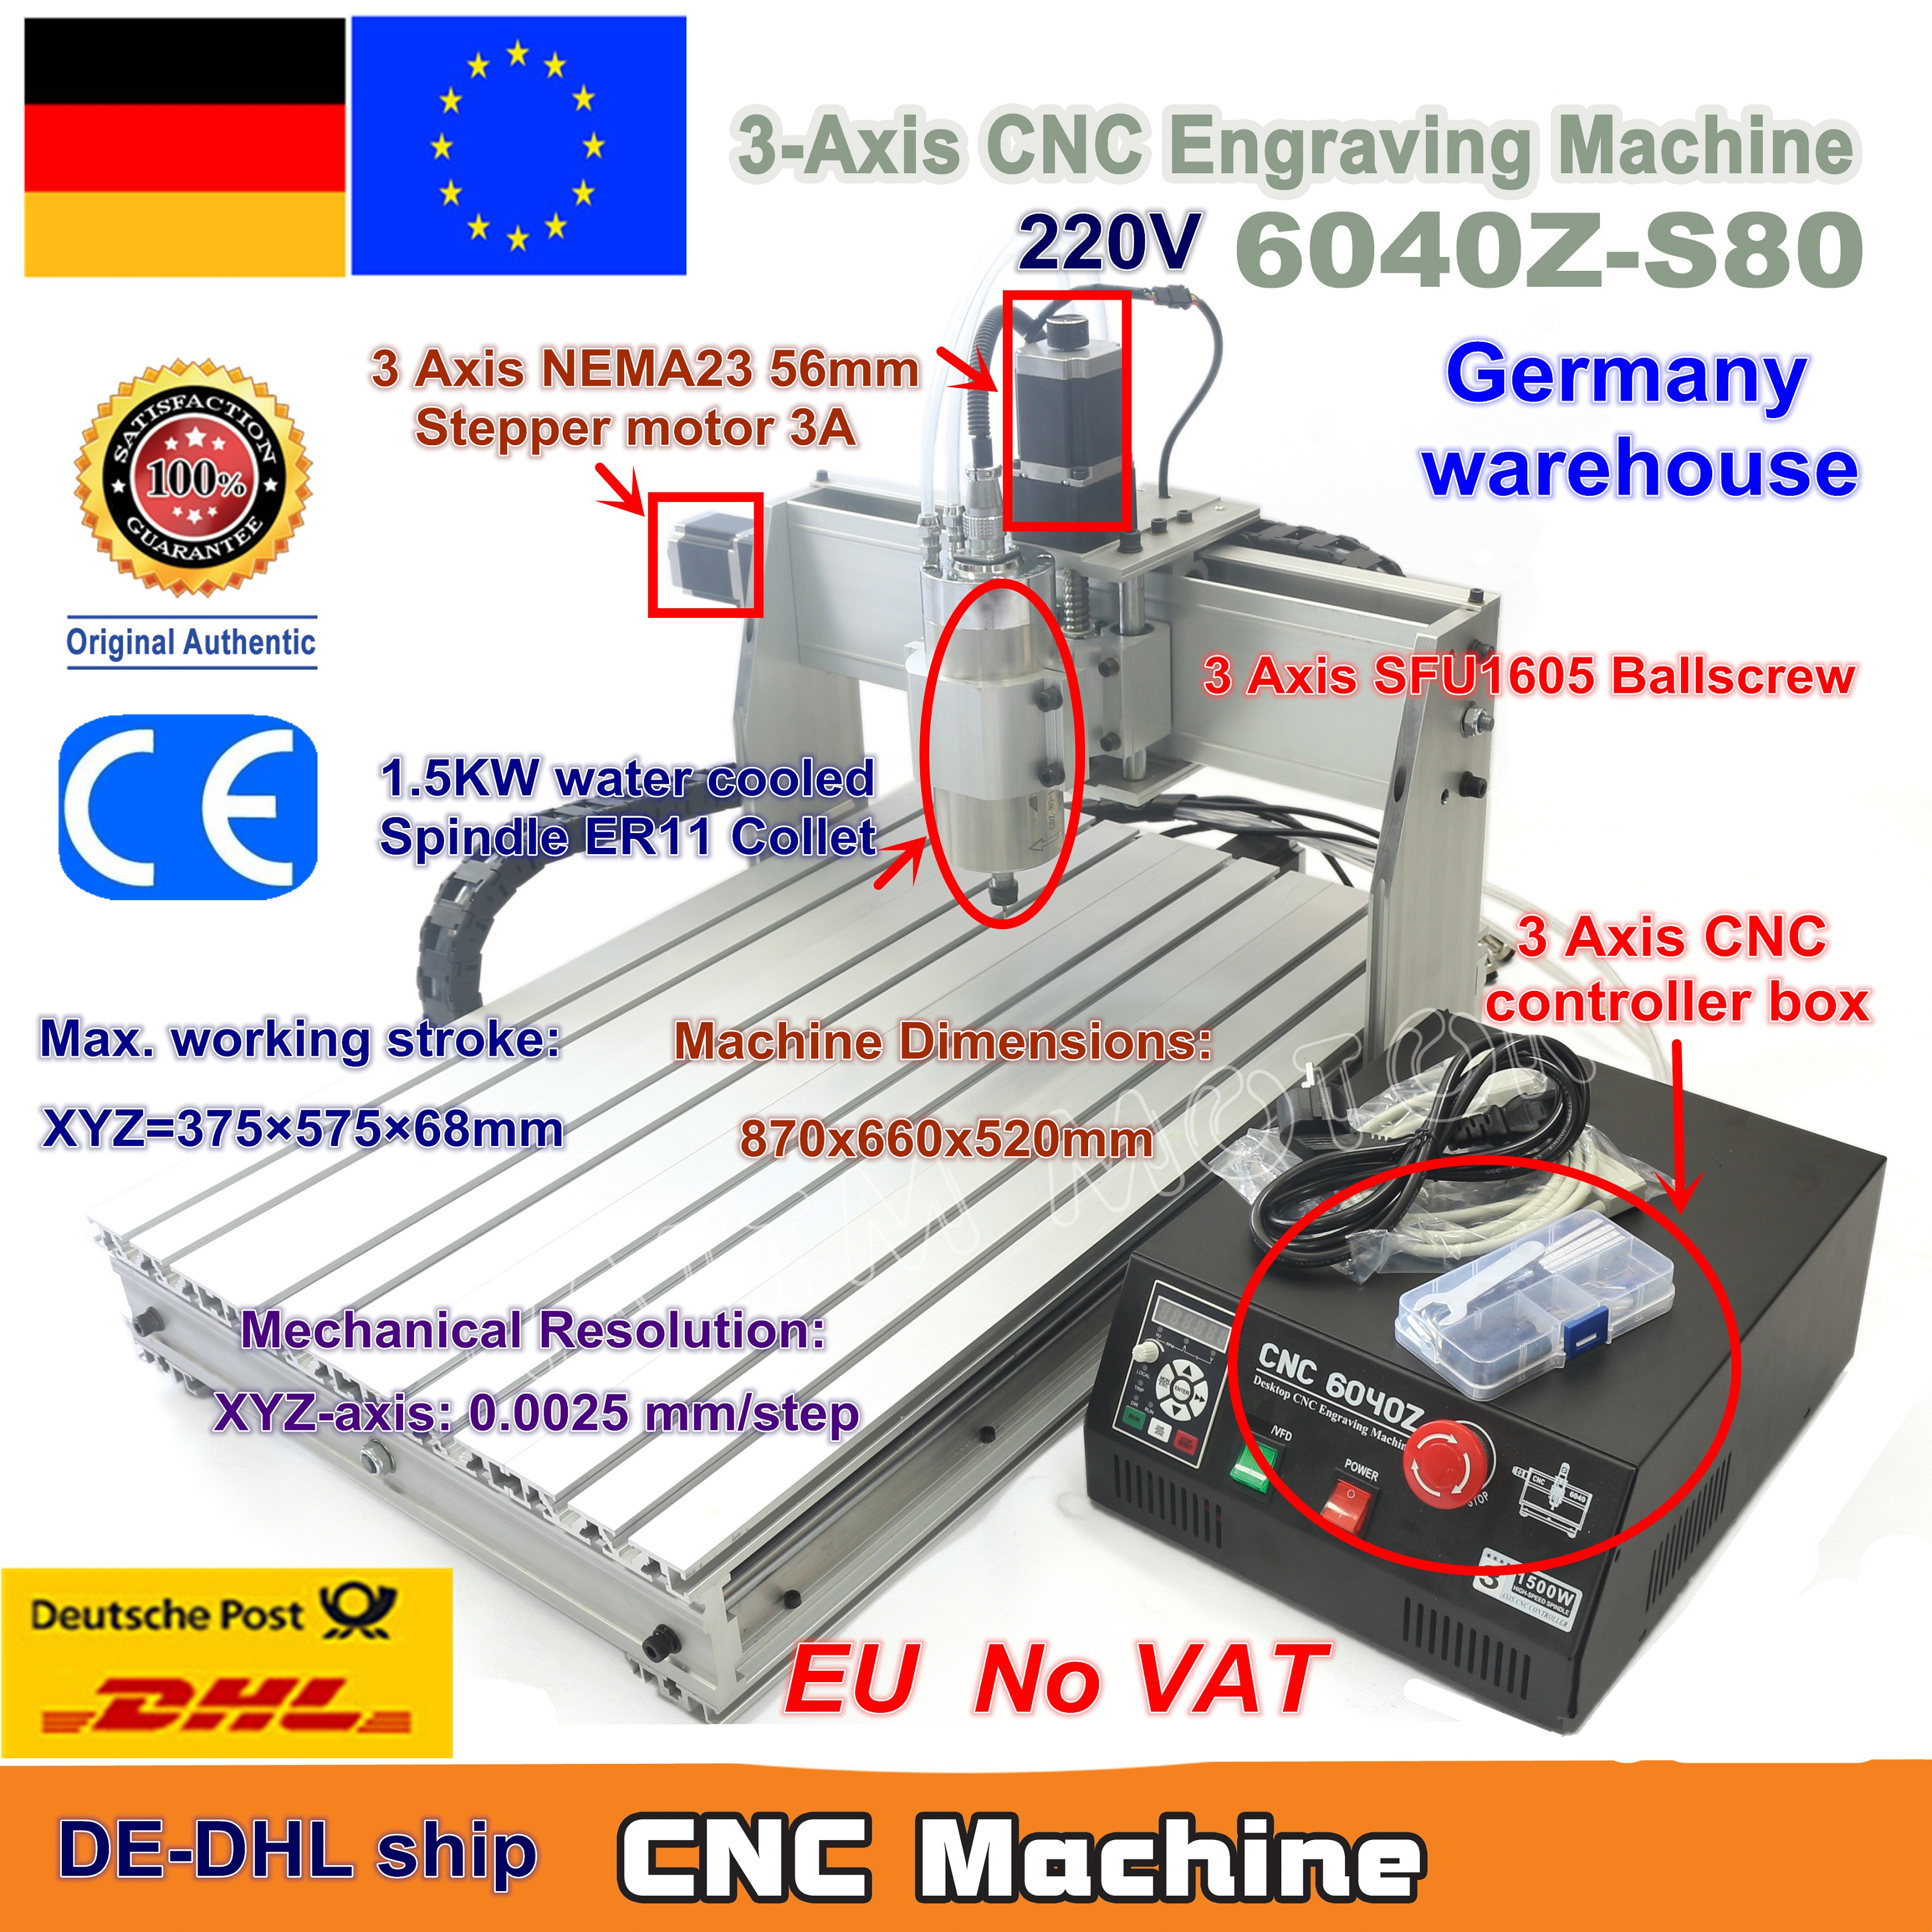 EU Ship free VAT 3 Axis 6040Z-S80 1.5KW 1500W Mach3 CNC Router Engraver Engraving Milling Cutting Machine 220VAC LPT portEU Ship free VAT 3 Axis 6040Z-S80 1.5KW 1500W Mach3 CNC Router Engraver Engraving Milling Cutting Machine 220VAC LPT port